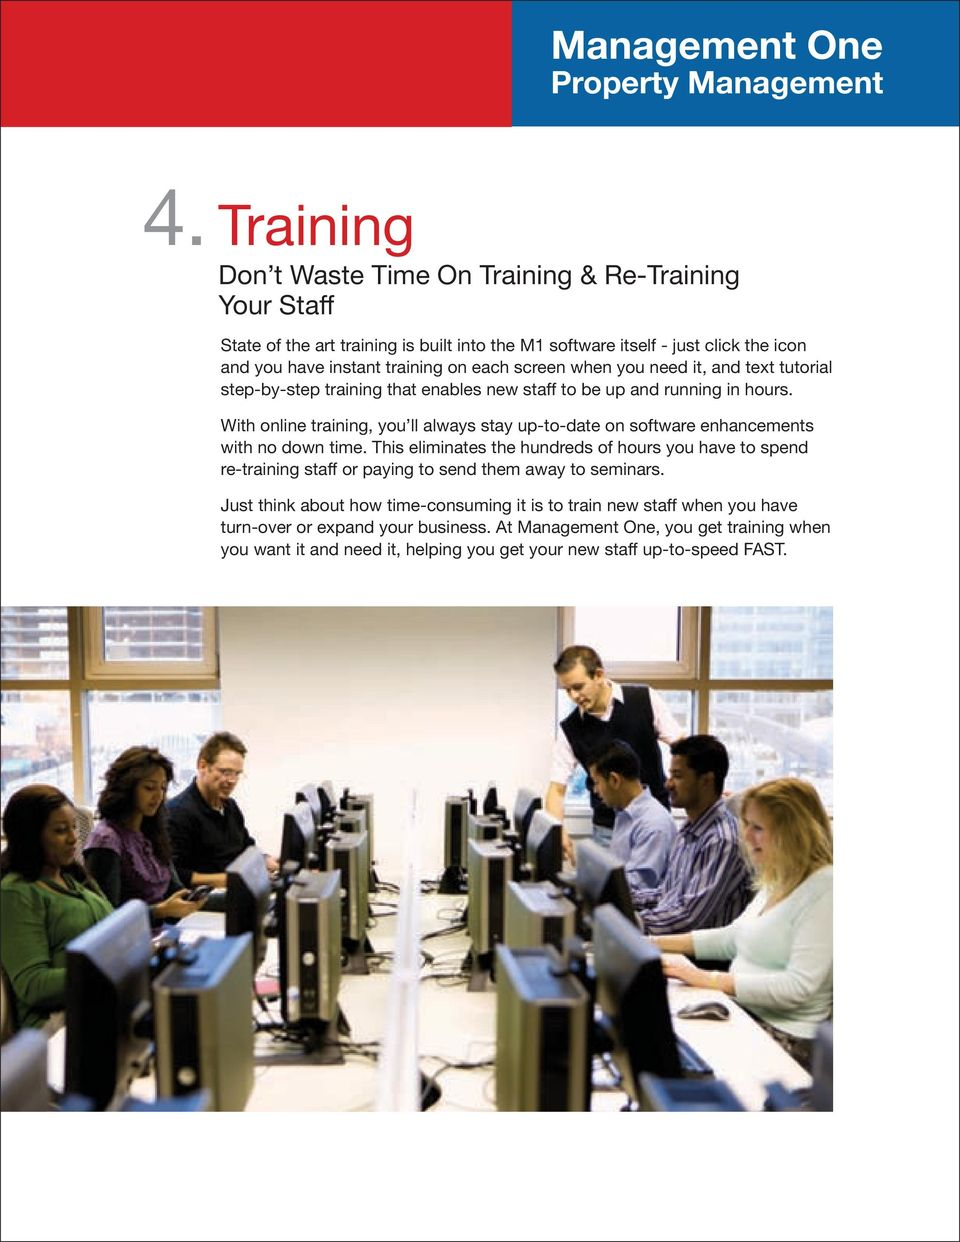 when you need it, and text tutorial step-by-step training that enables new staff to be up and running in hours.